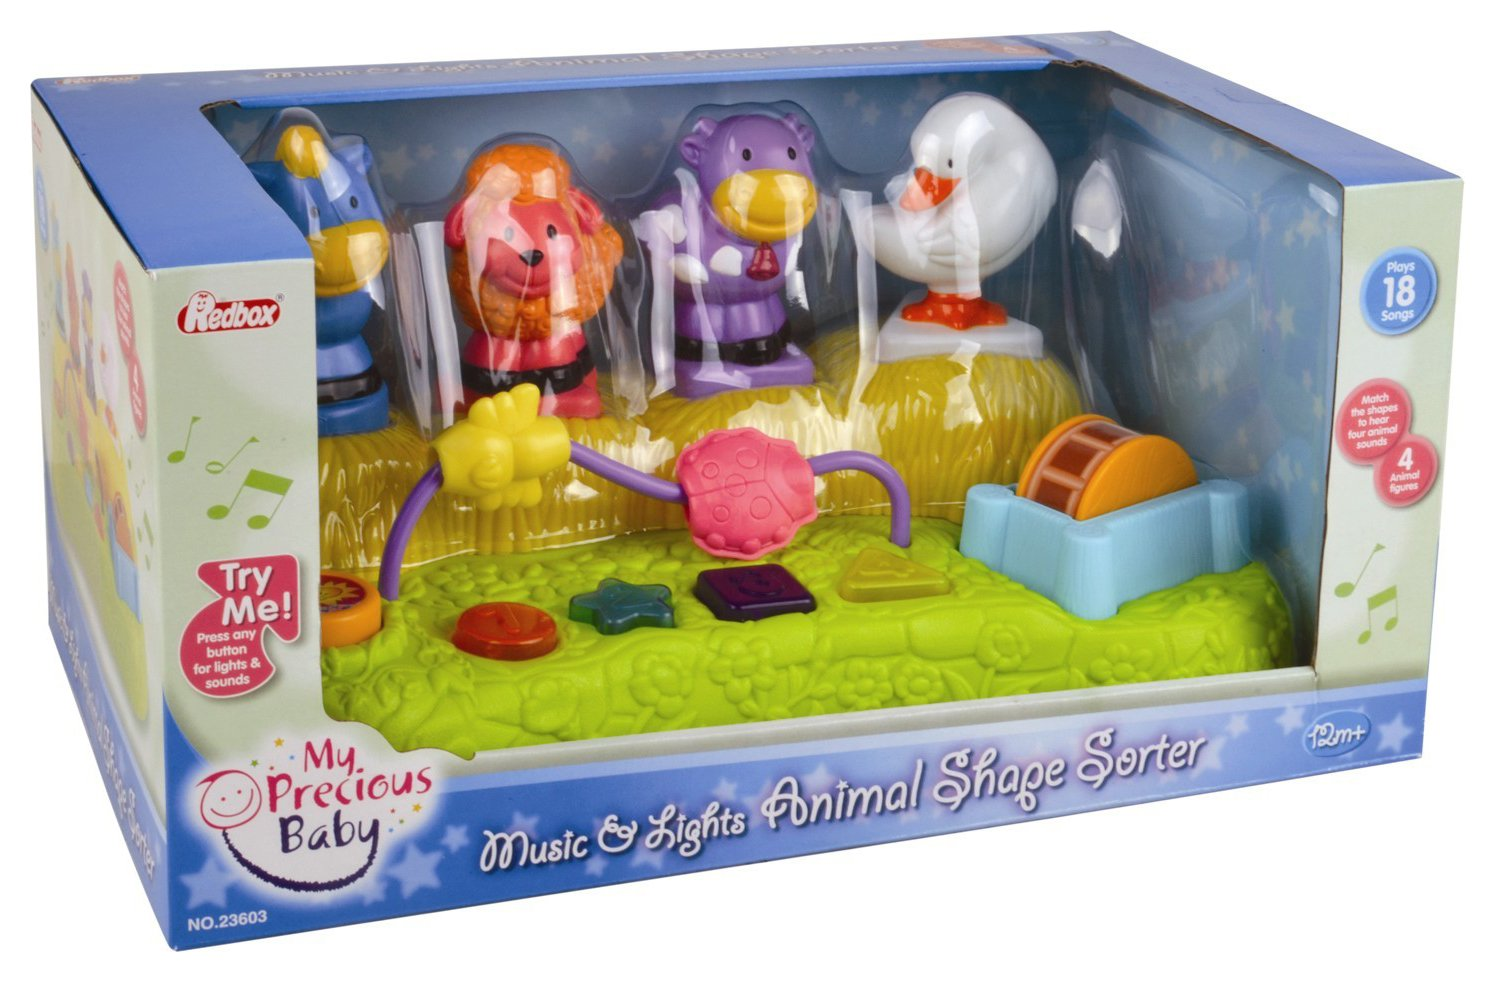 Image of My Precious - Baby Music and - Lights Animal Shape Sorter